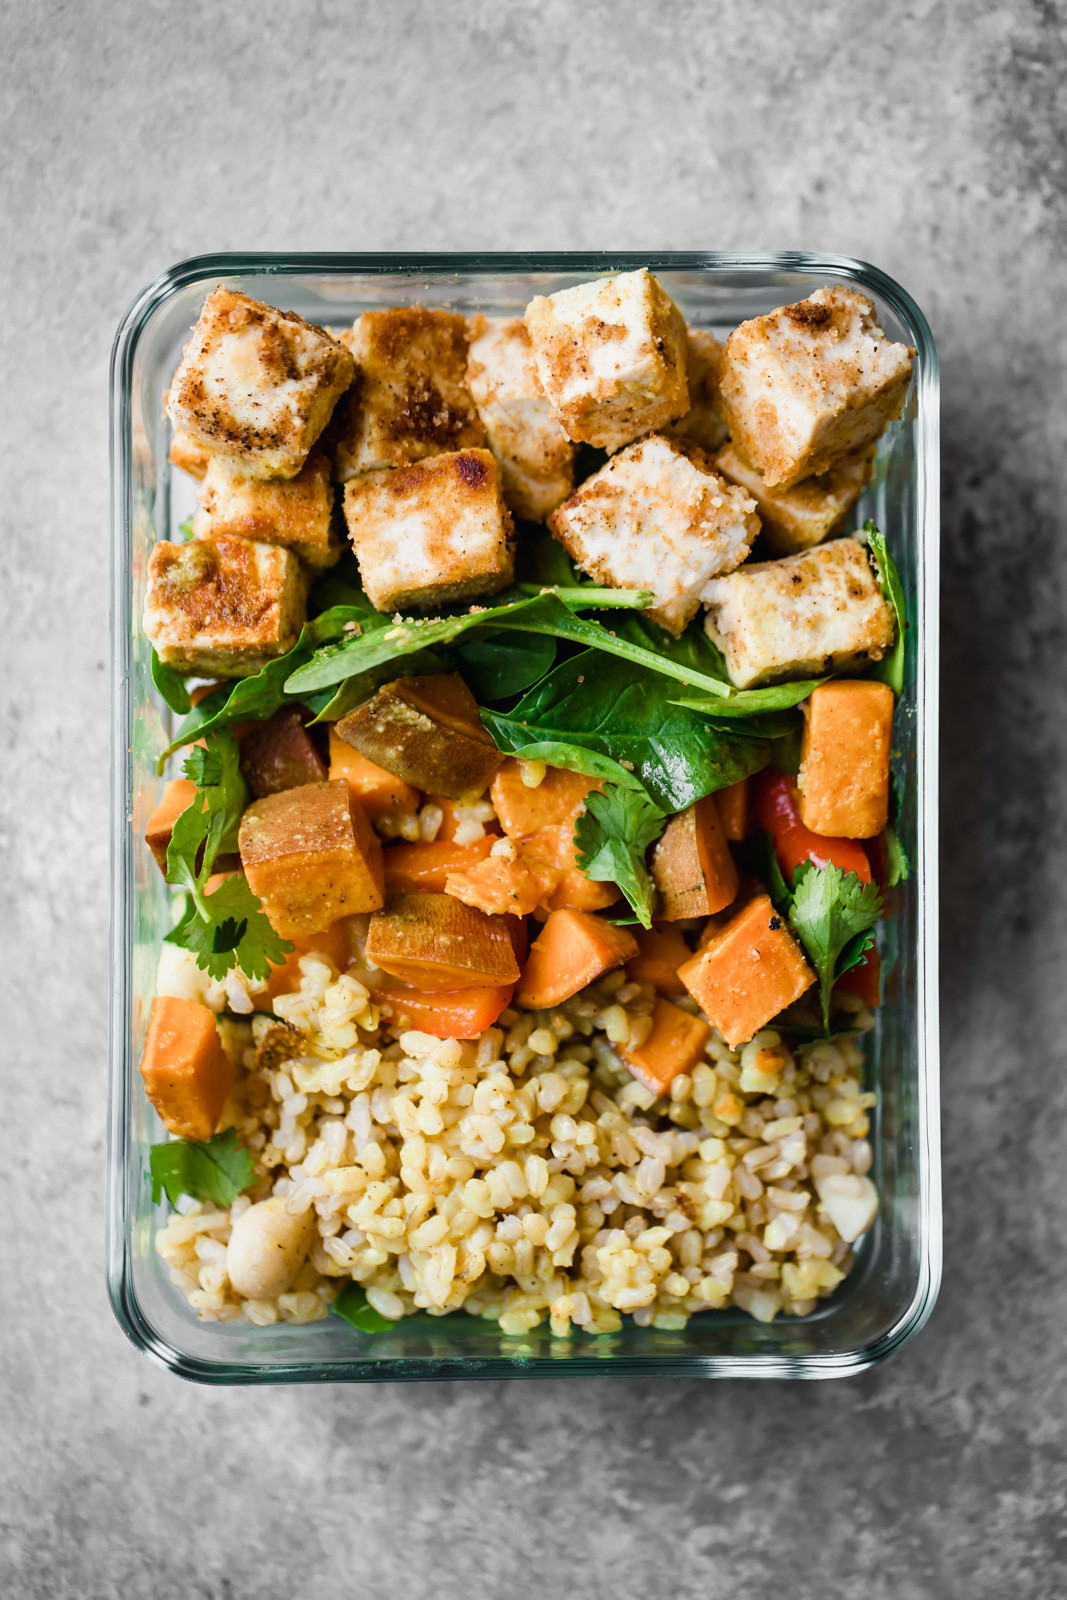 Vegan Protein Lunch Ideas  15 Delicious Vegan Lunch Recipes that are Perfect for Meal